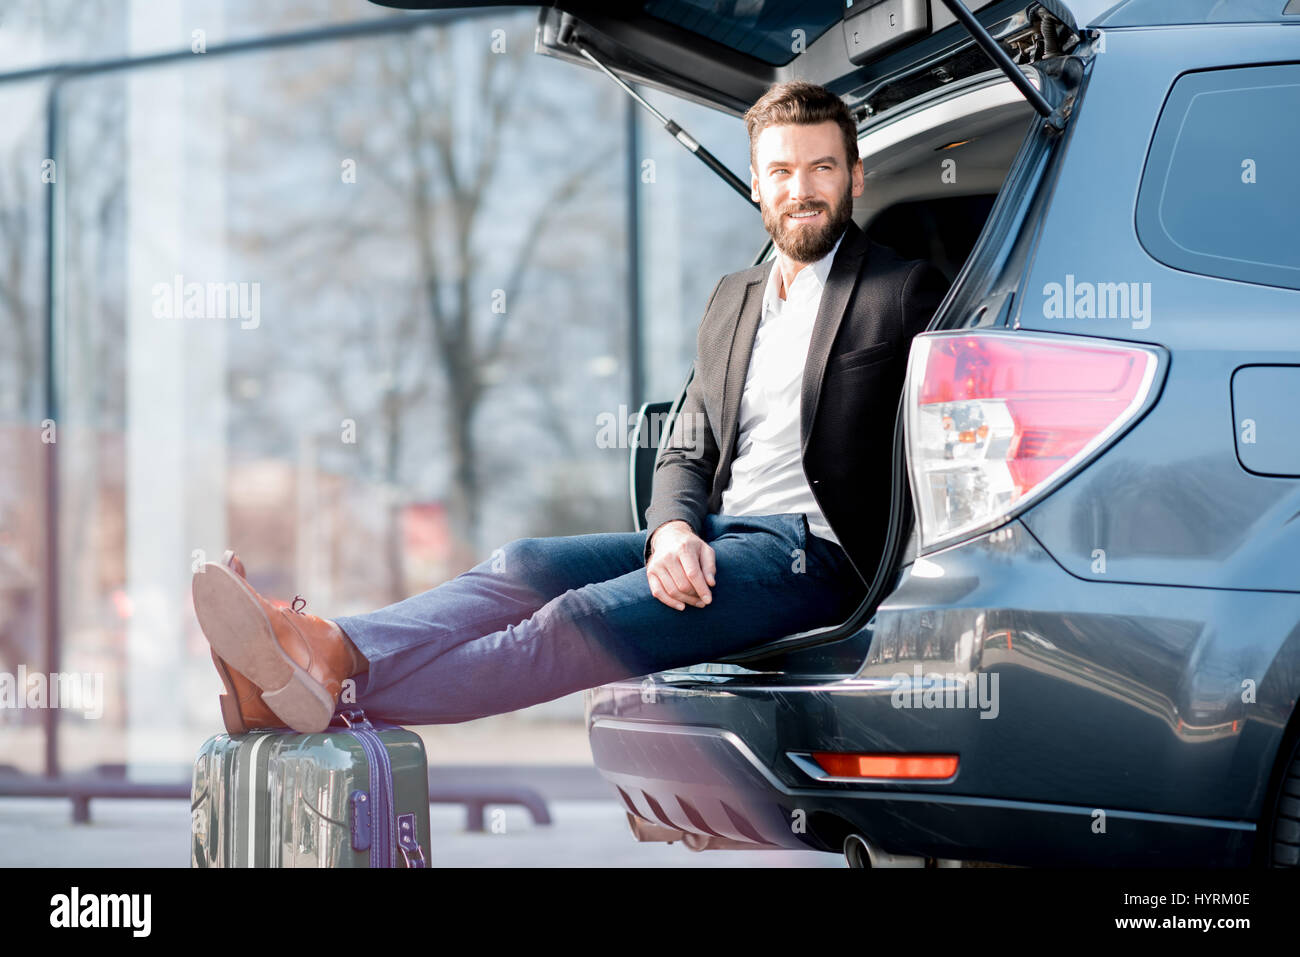 Businessman traveling by car - Stock Image